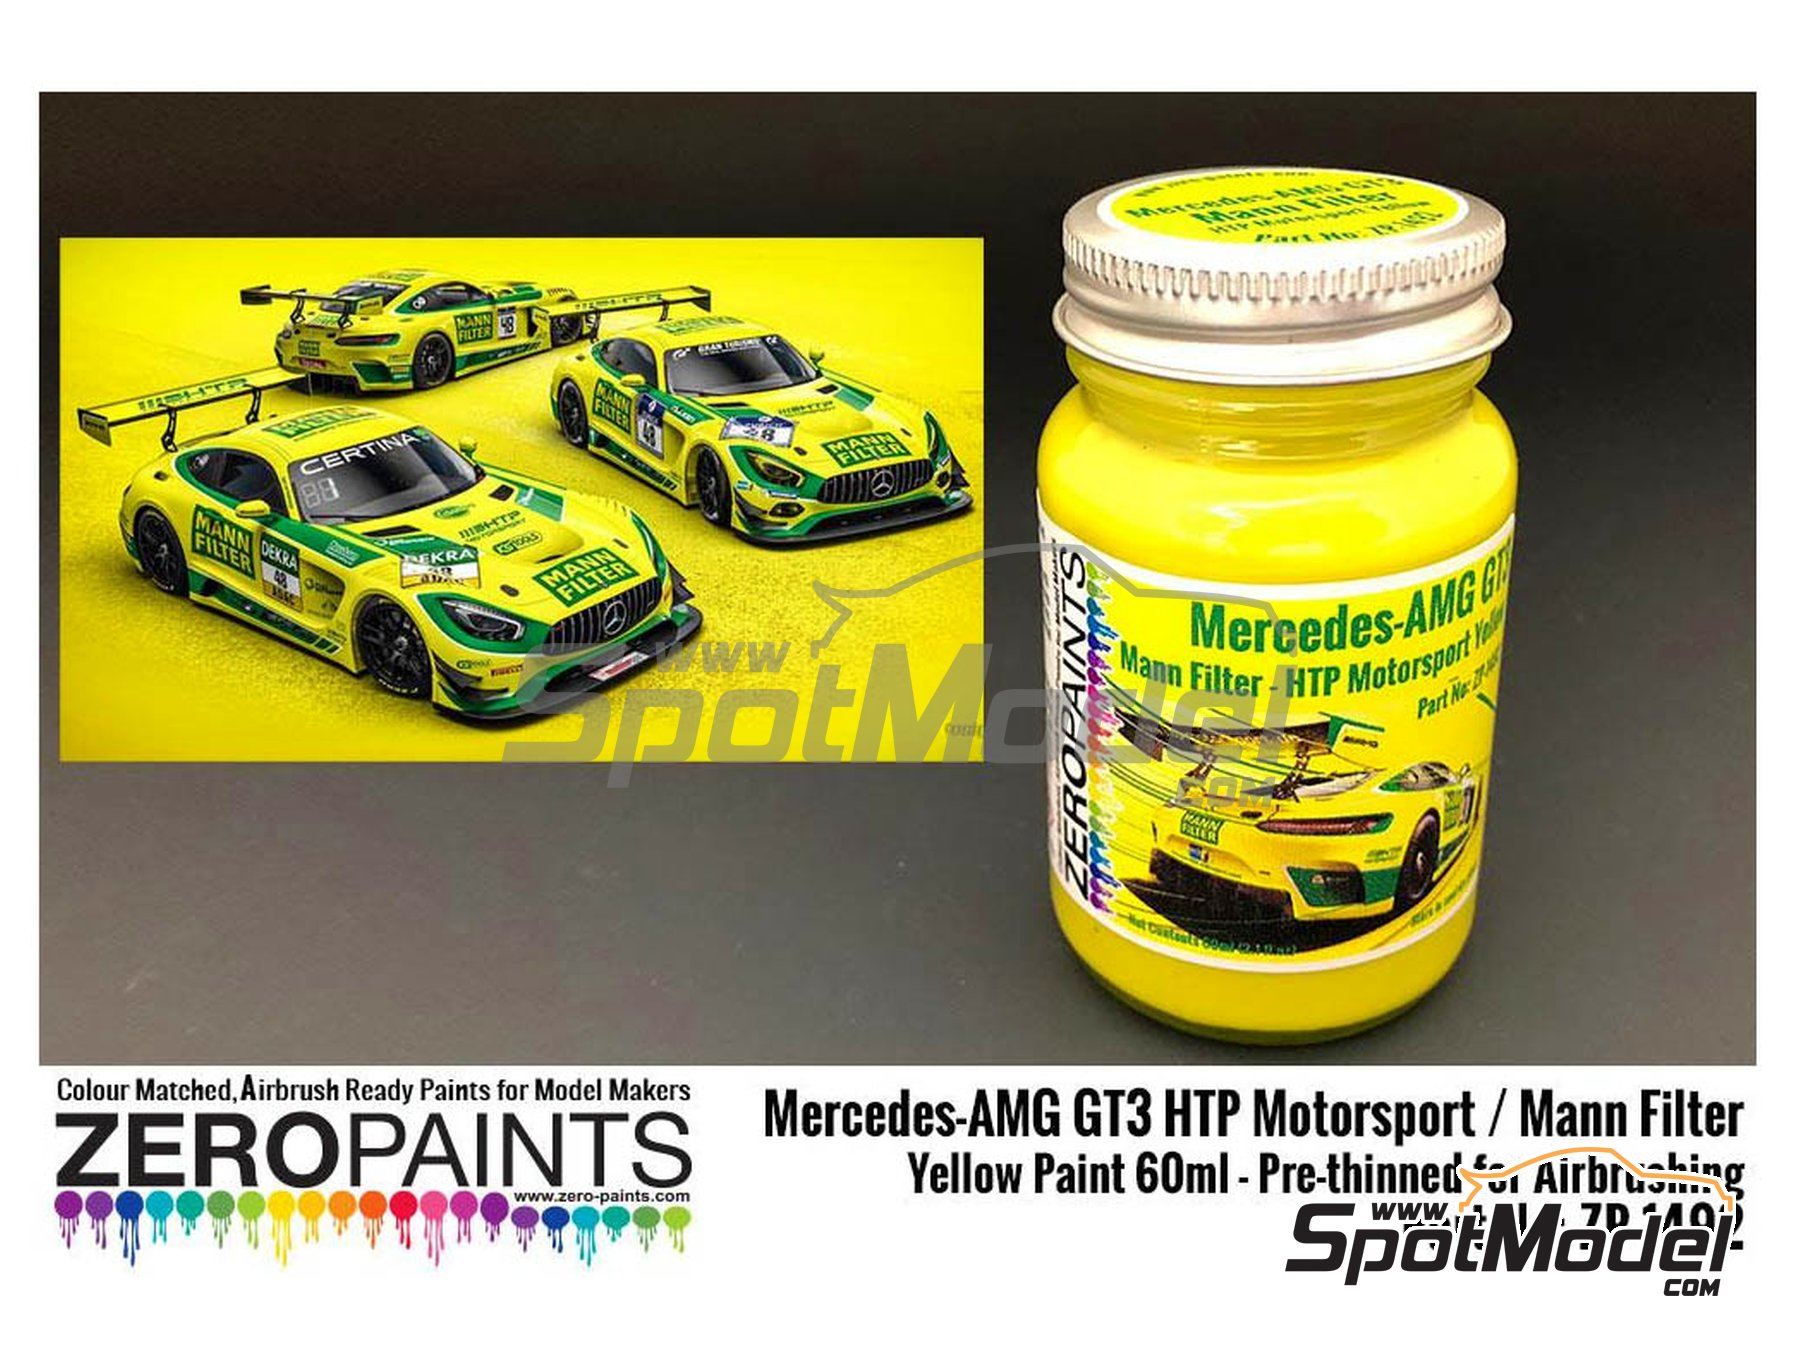 Image 1: Mercedes-AMG GT3 HTP Motorsport / Mann Filter Yellow Paint - 1 x 60ml | Paint manufactured by Zero Paints (ref. ZP-1492)